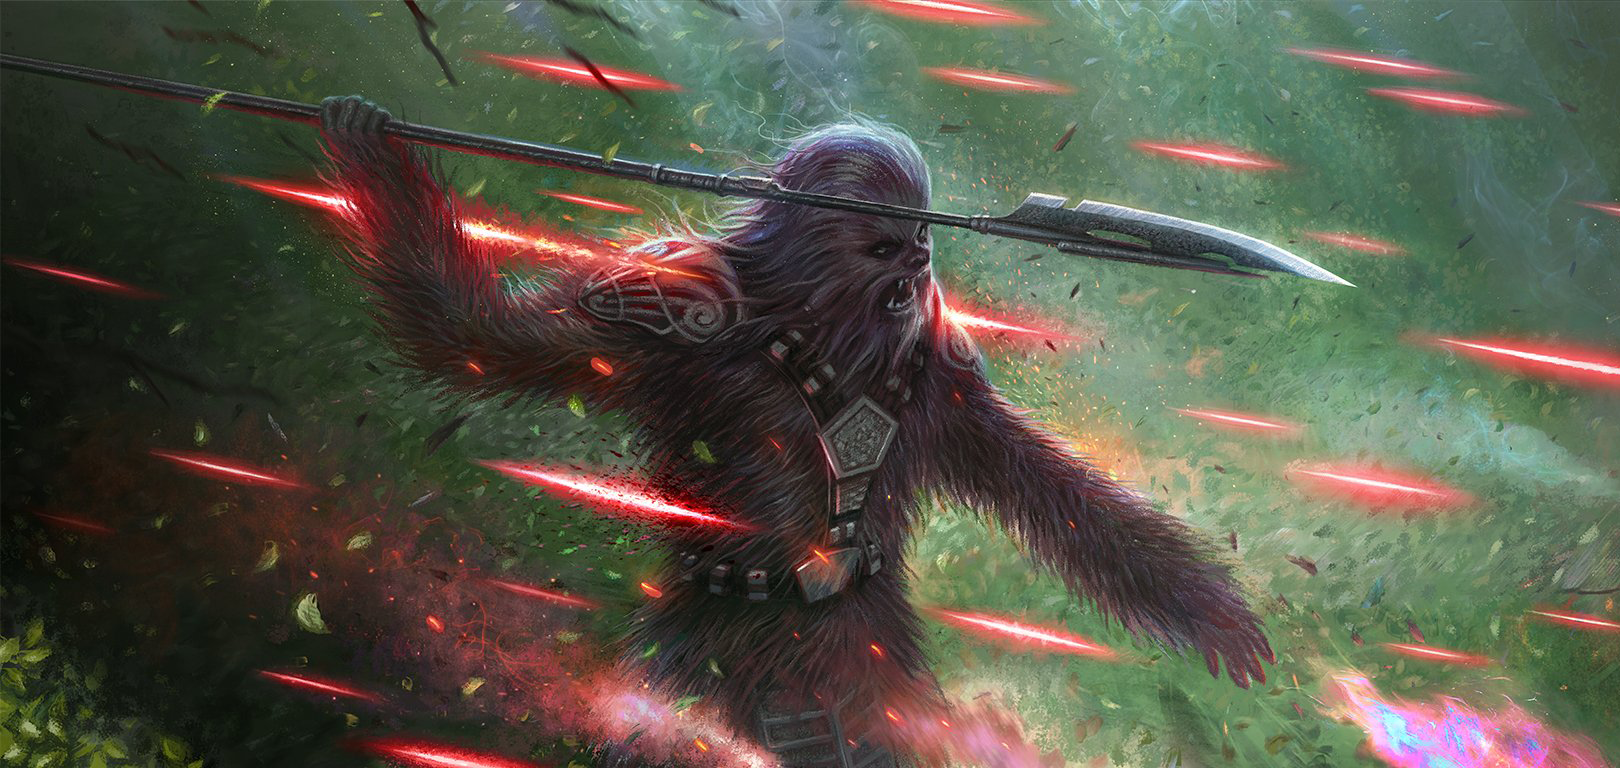 Wookiee Wookieepedia Fandom Gungi's lightsaber was created during the clone wars by a wookiee youngling called gungi. wookiee wookieepedia fandom